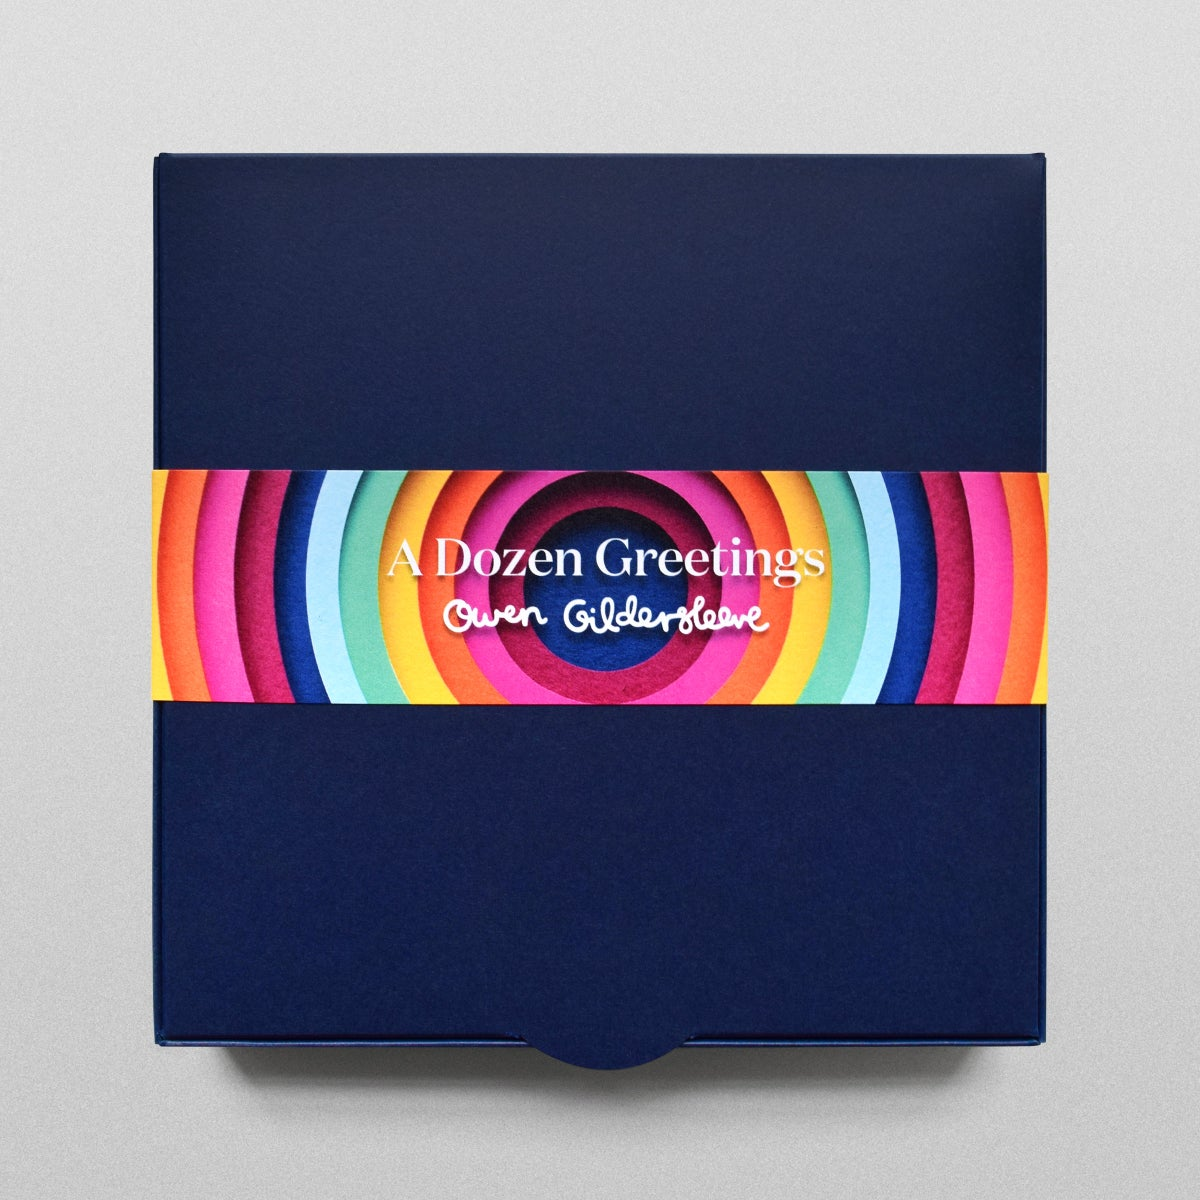 Image of A Dozen Greetings - Pack of 12 Greeting Cards